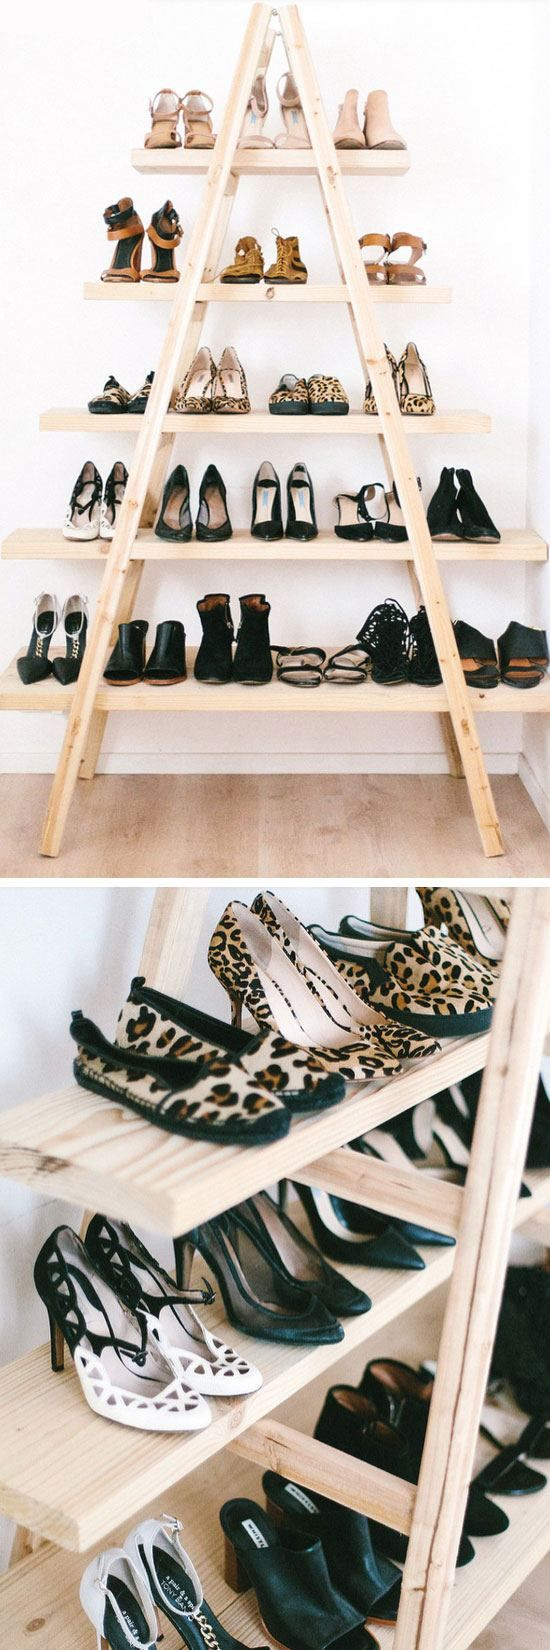 DIY Ladder Shoe Shelf | 22 DIY Shoe Storage Ideas Dollar Stores